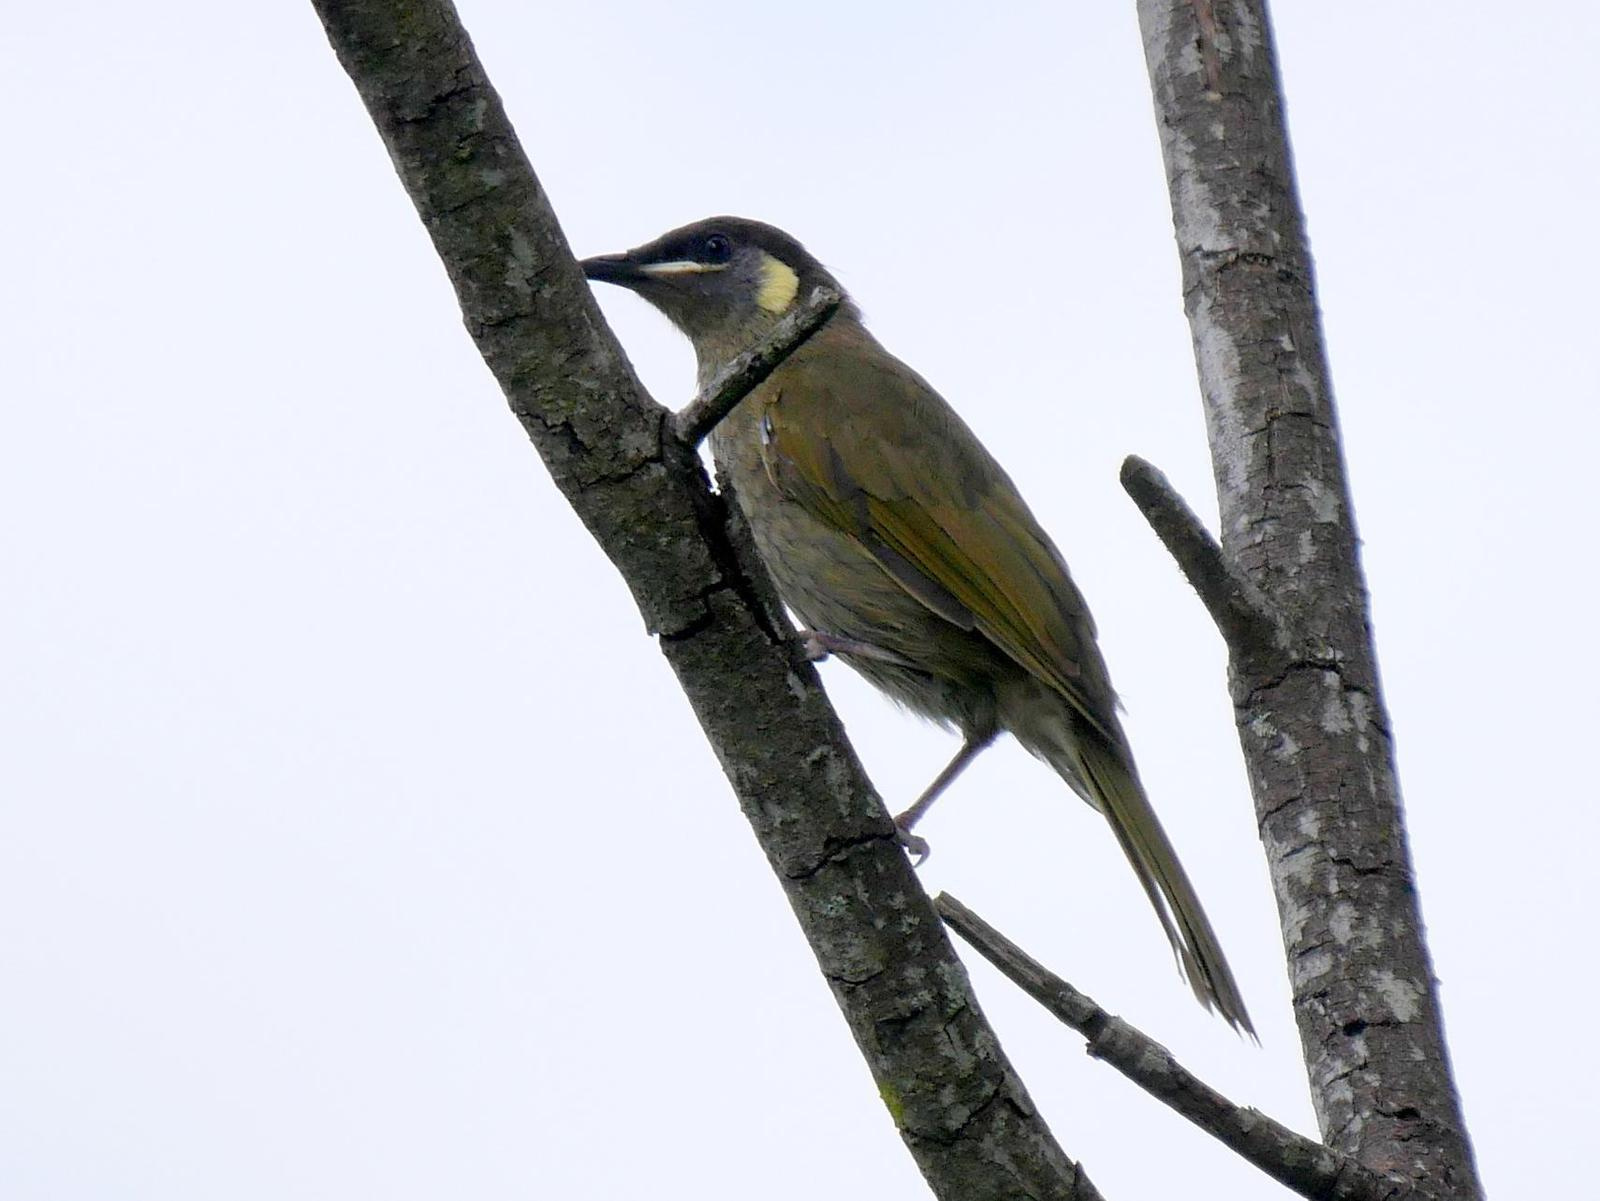 Lewin's Honeyeater Photo by Peter Lowe